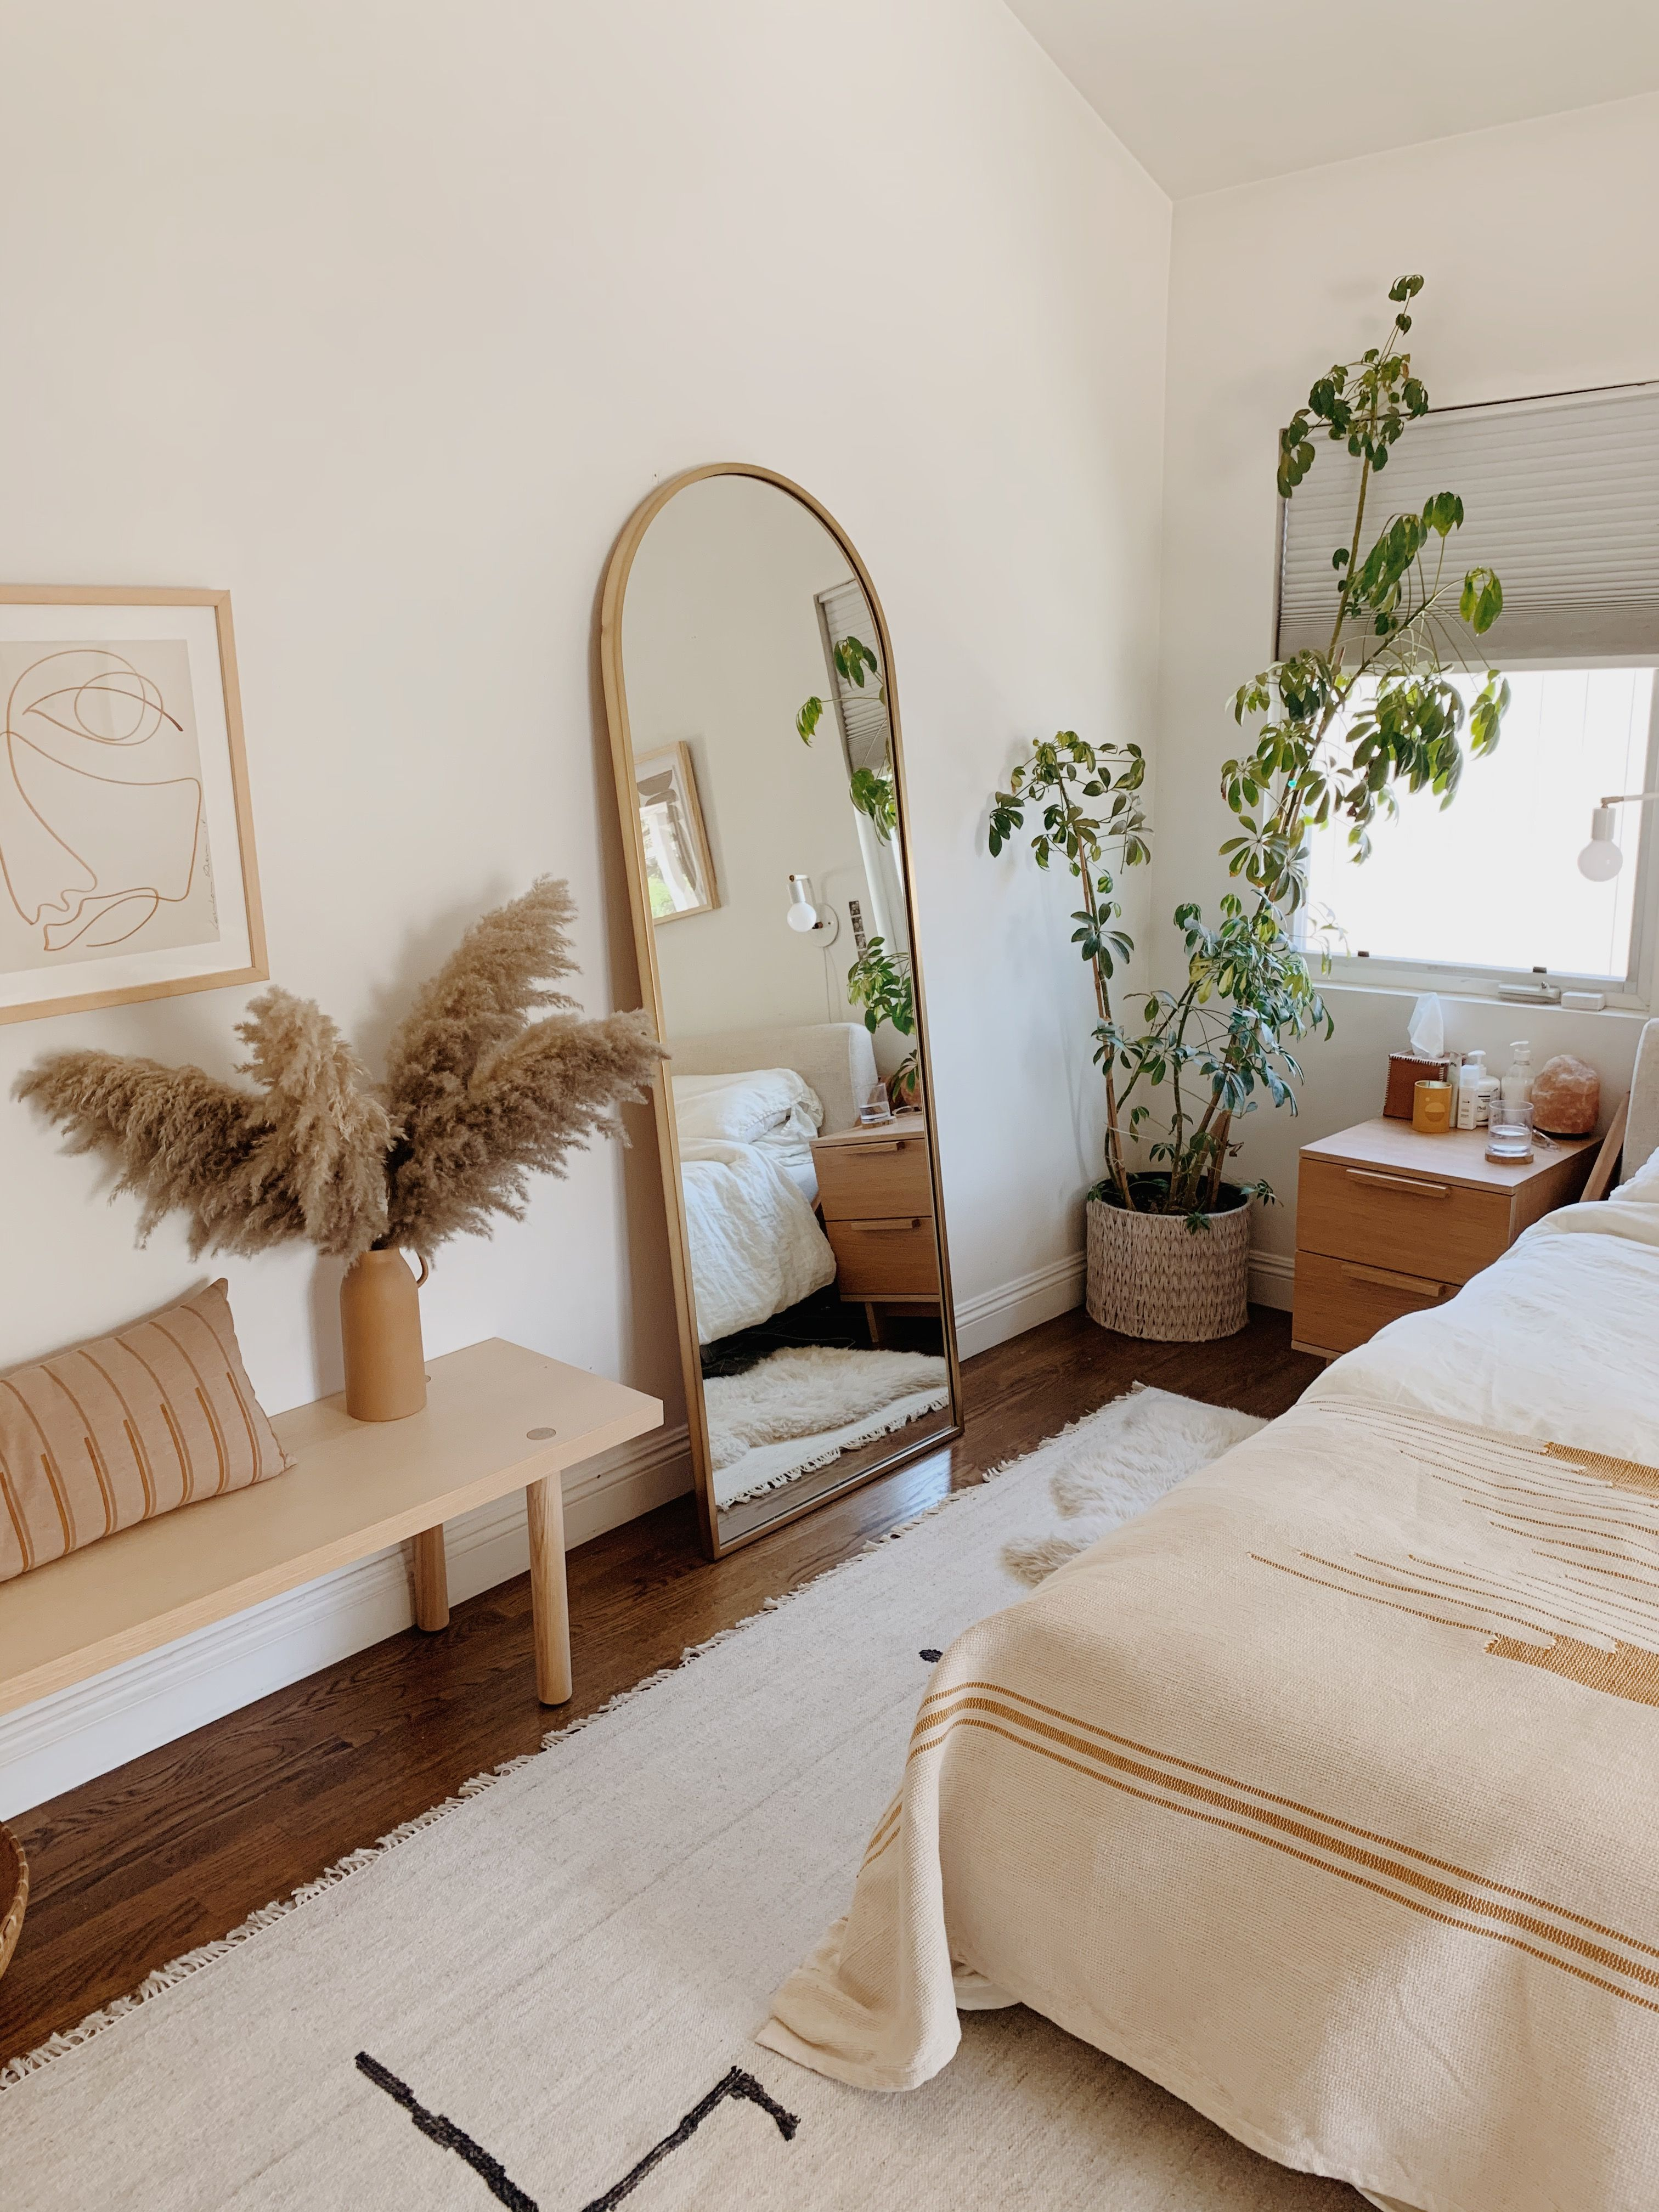 Our Bedroom Video Tour With Links To Everything Almost Makes Perfect Room Inspiration Bedroom Bedroom Interior Home Decor Bedroom